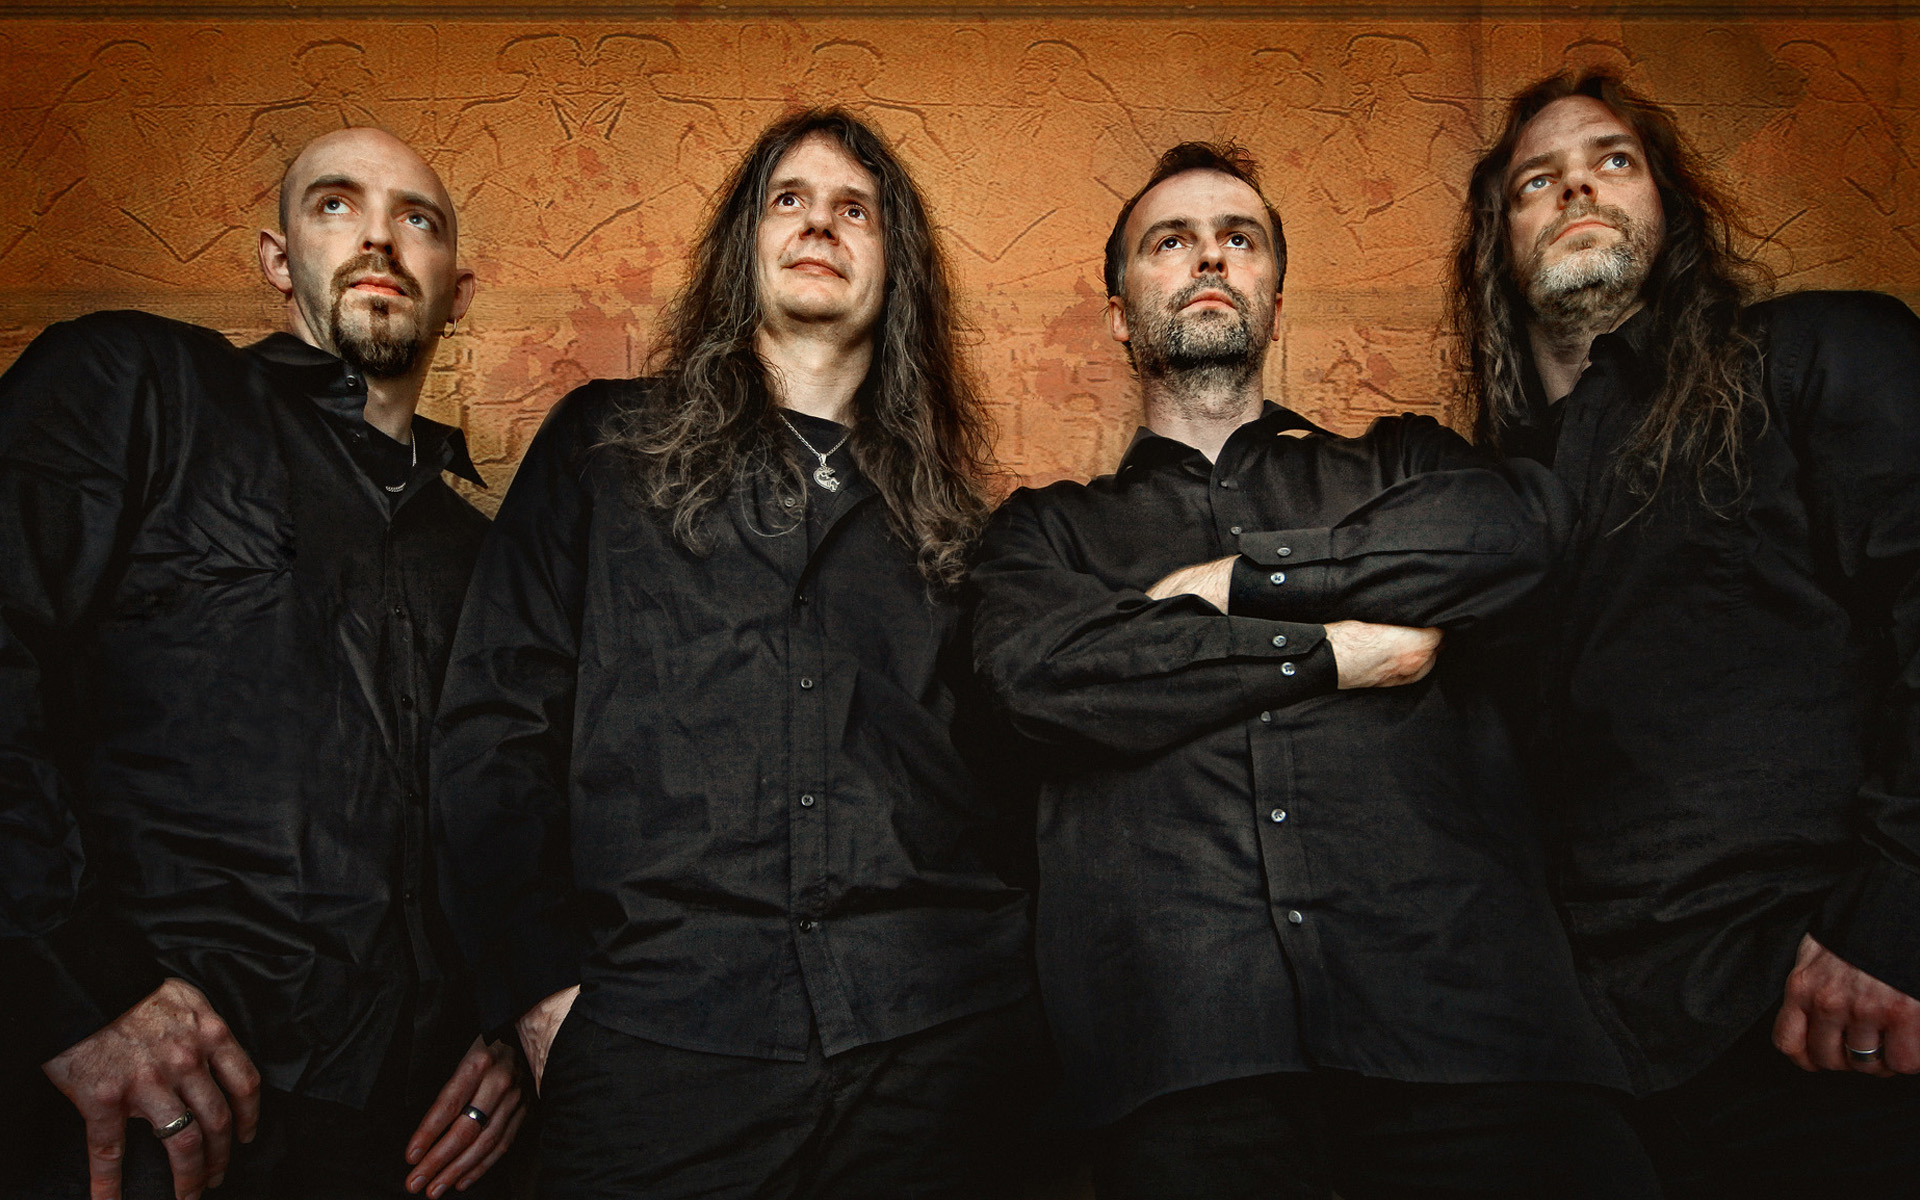 Wallpaper with the musicians of Blind Guardian